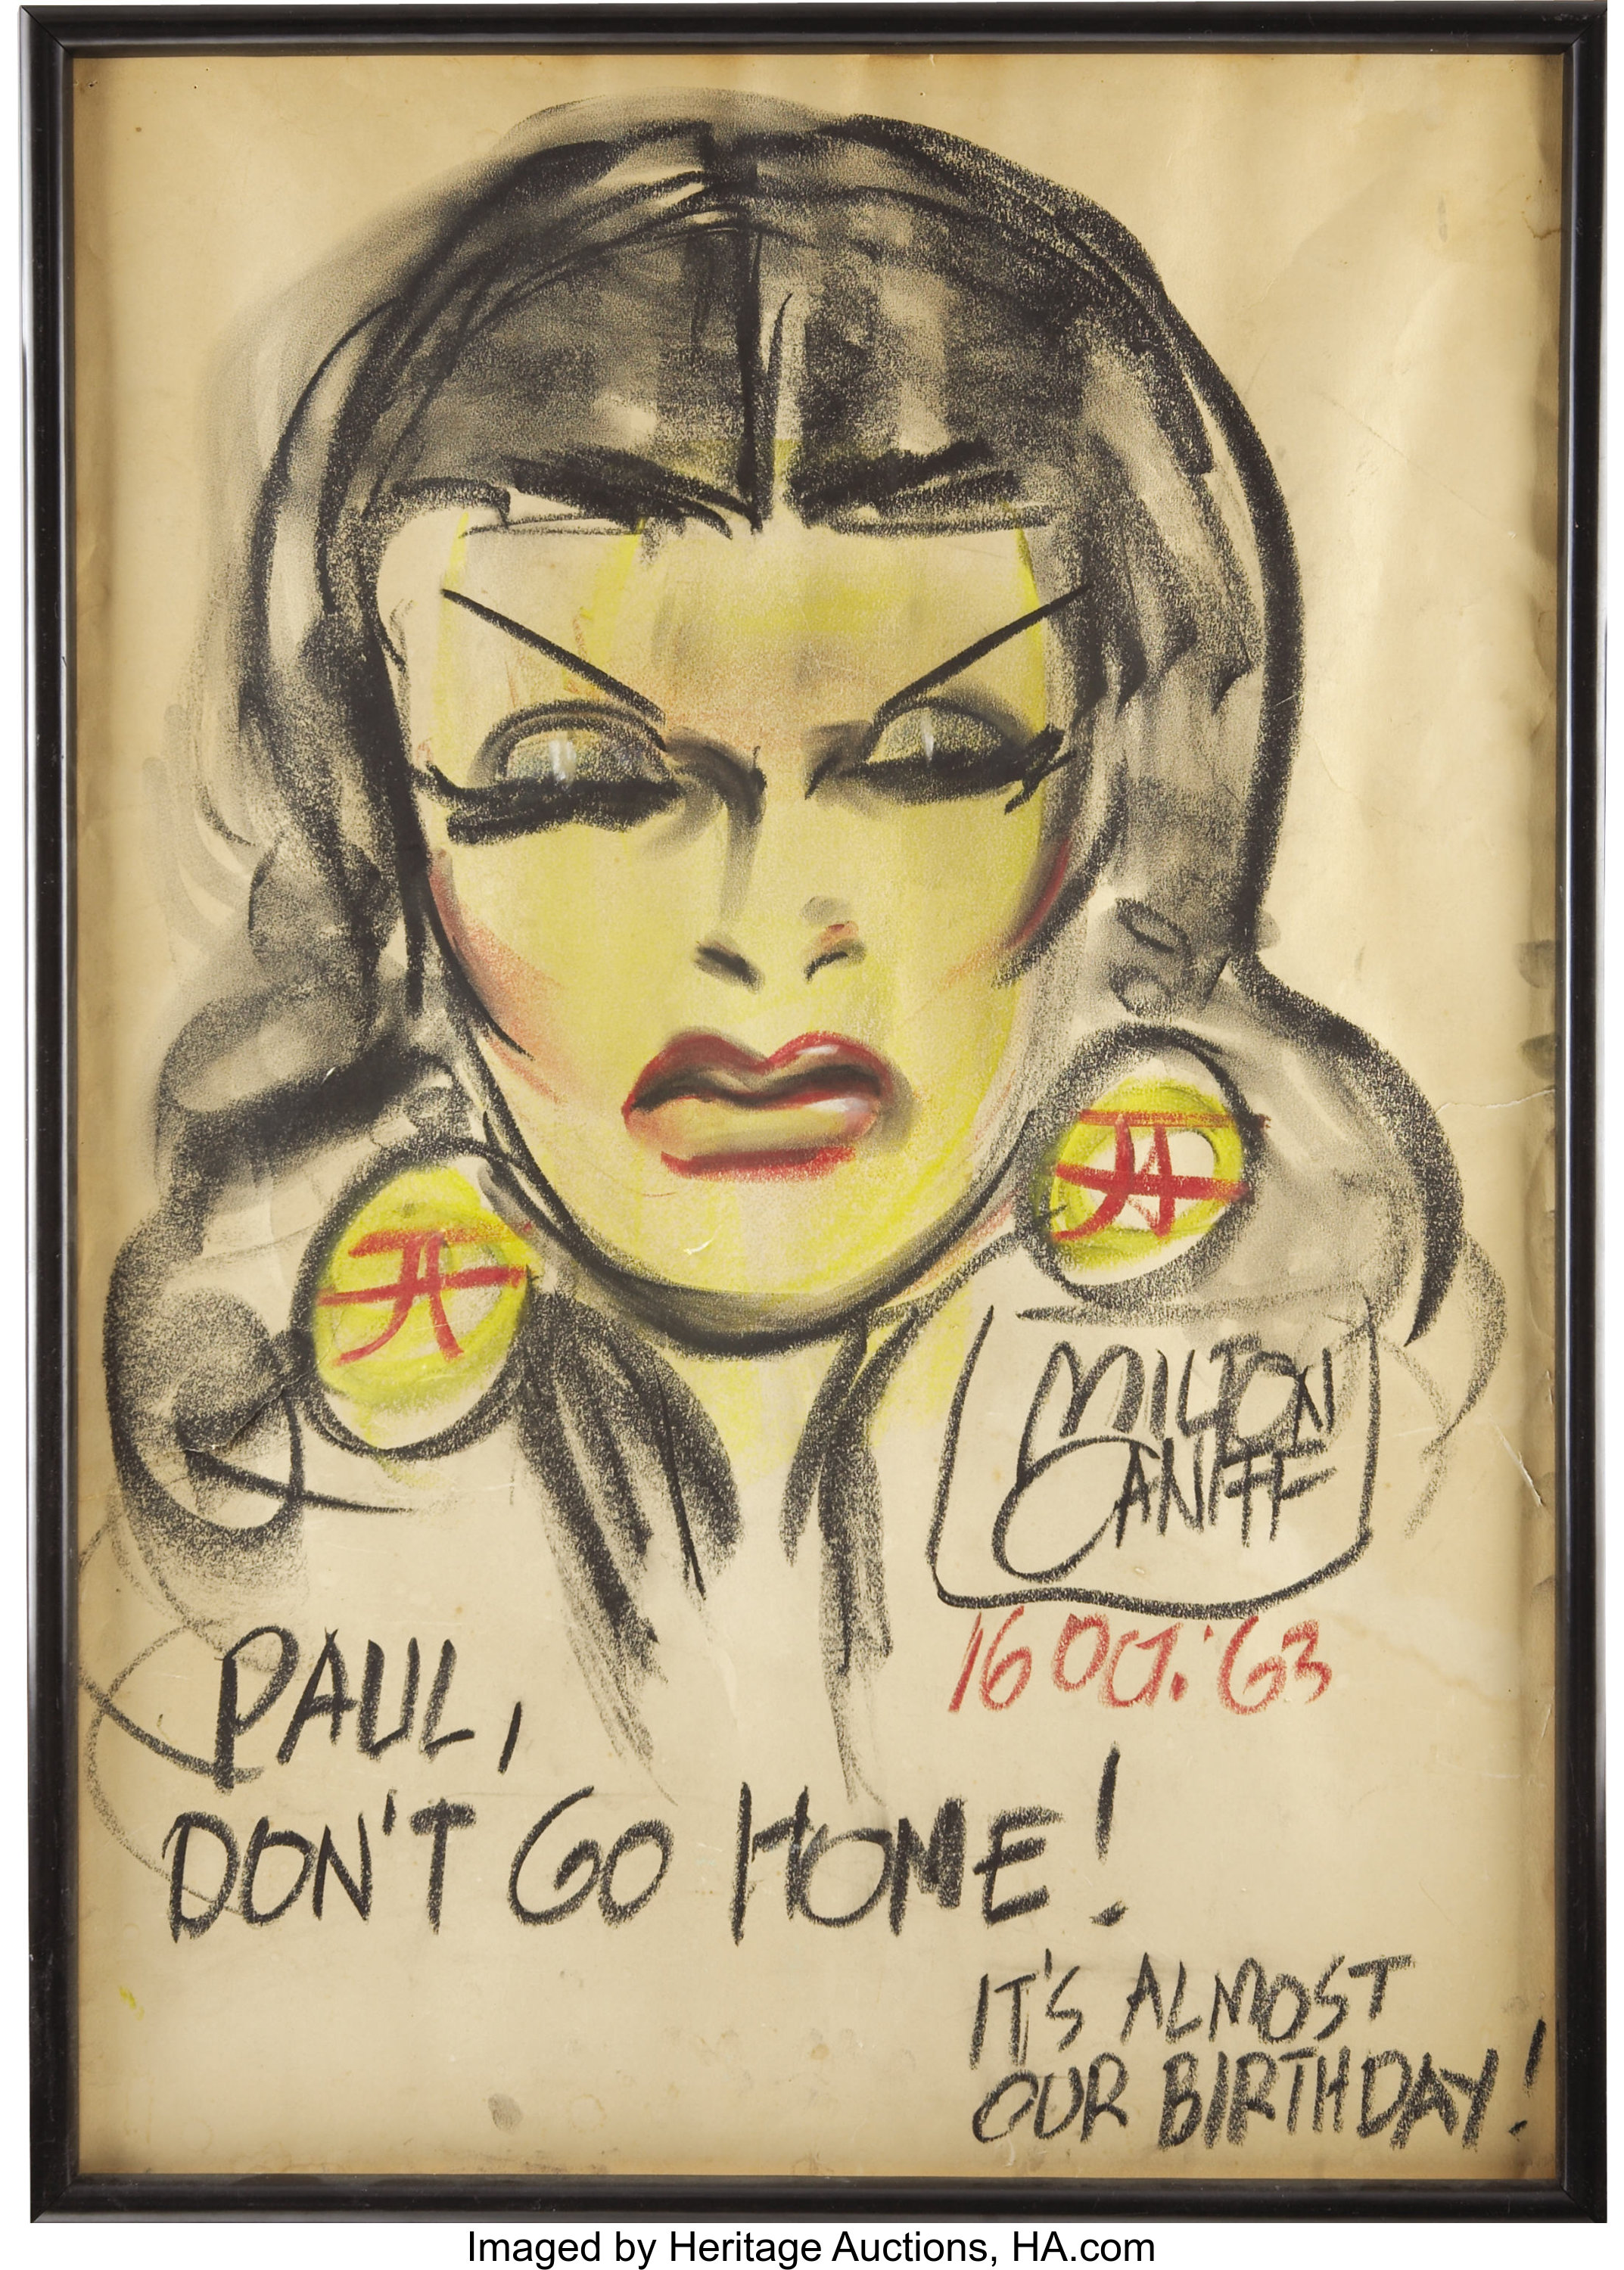 Milton Caniff Dragon Lady Chalk Talk Sketch Original Art Lot 42251 Heritage Auctions